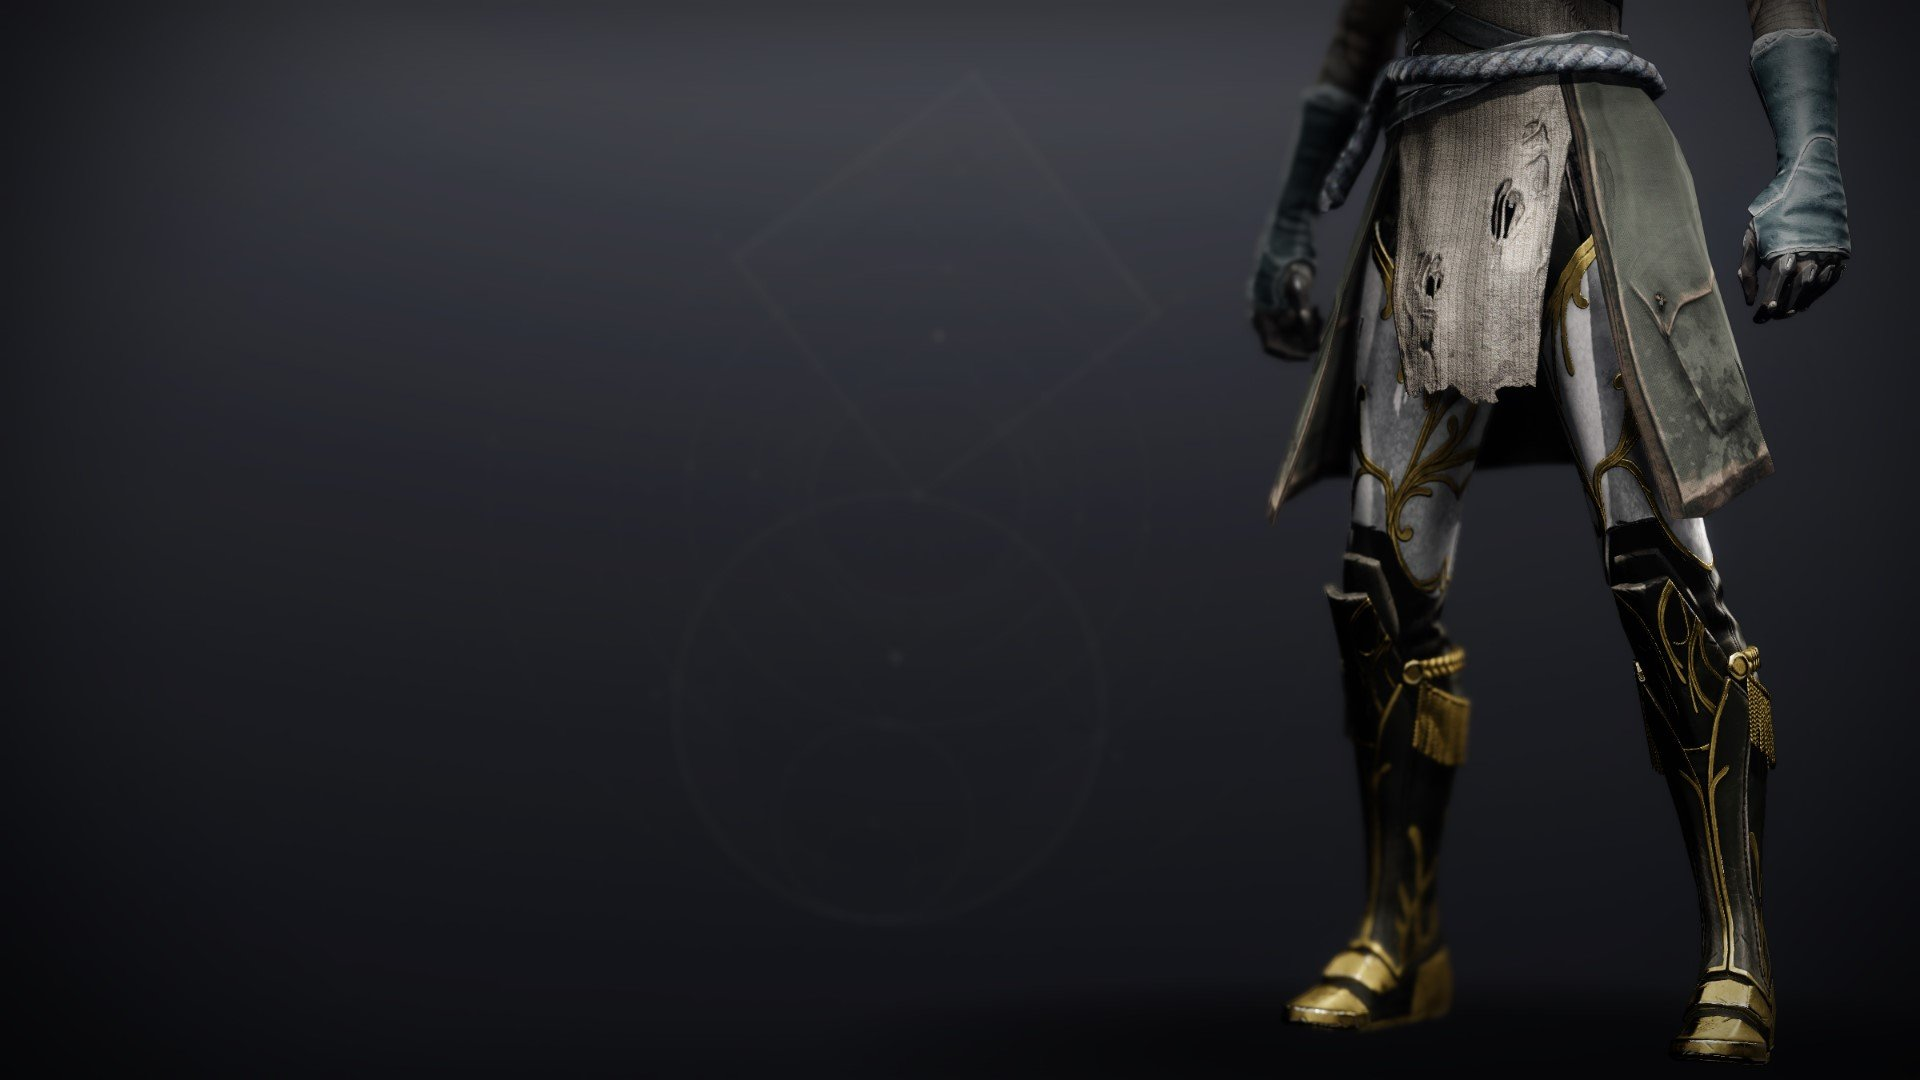 An in-game render of the Celestine Boots (Magnificent).